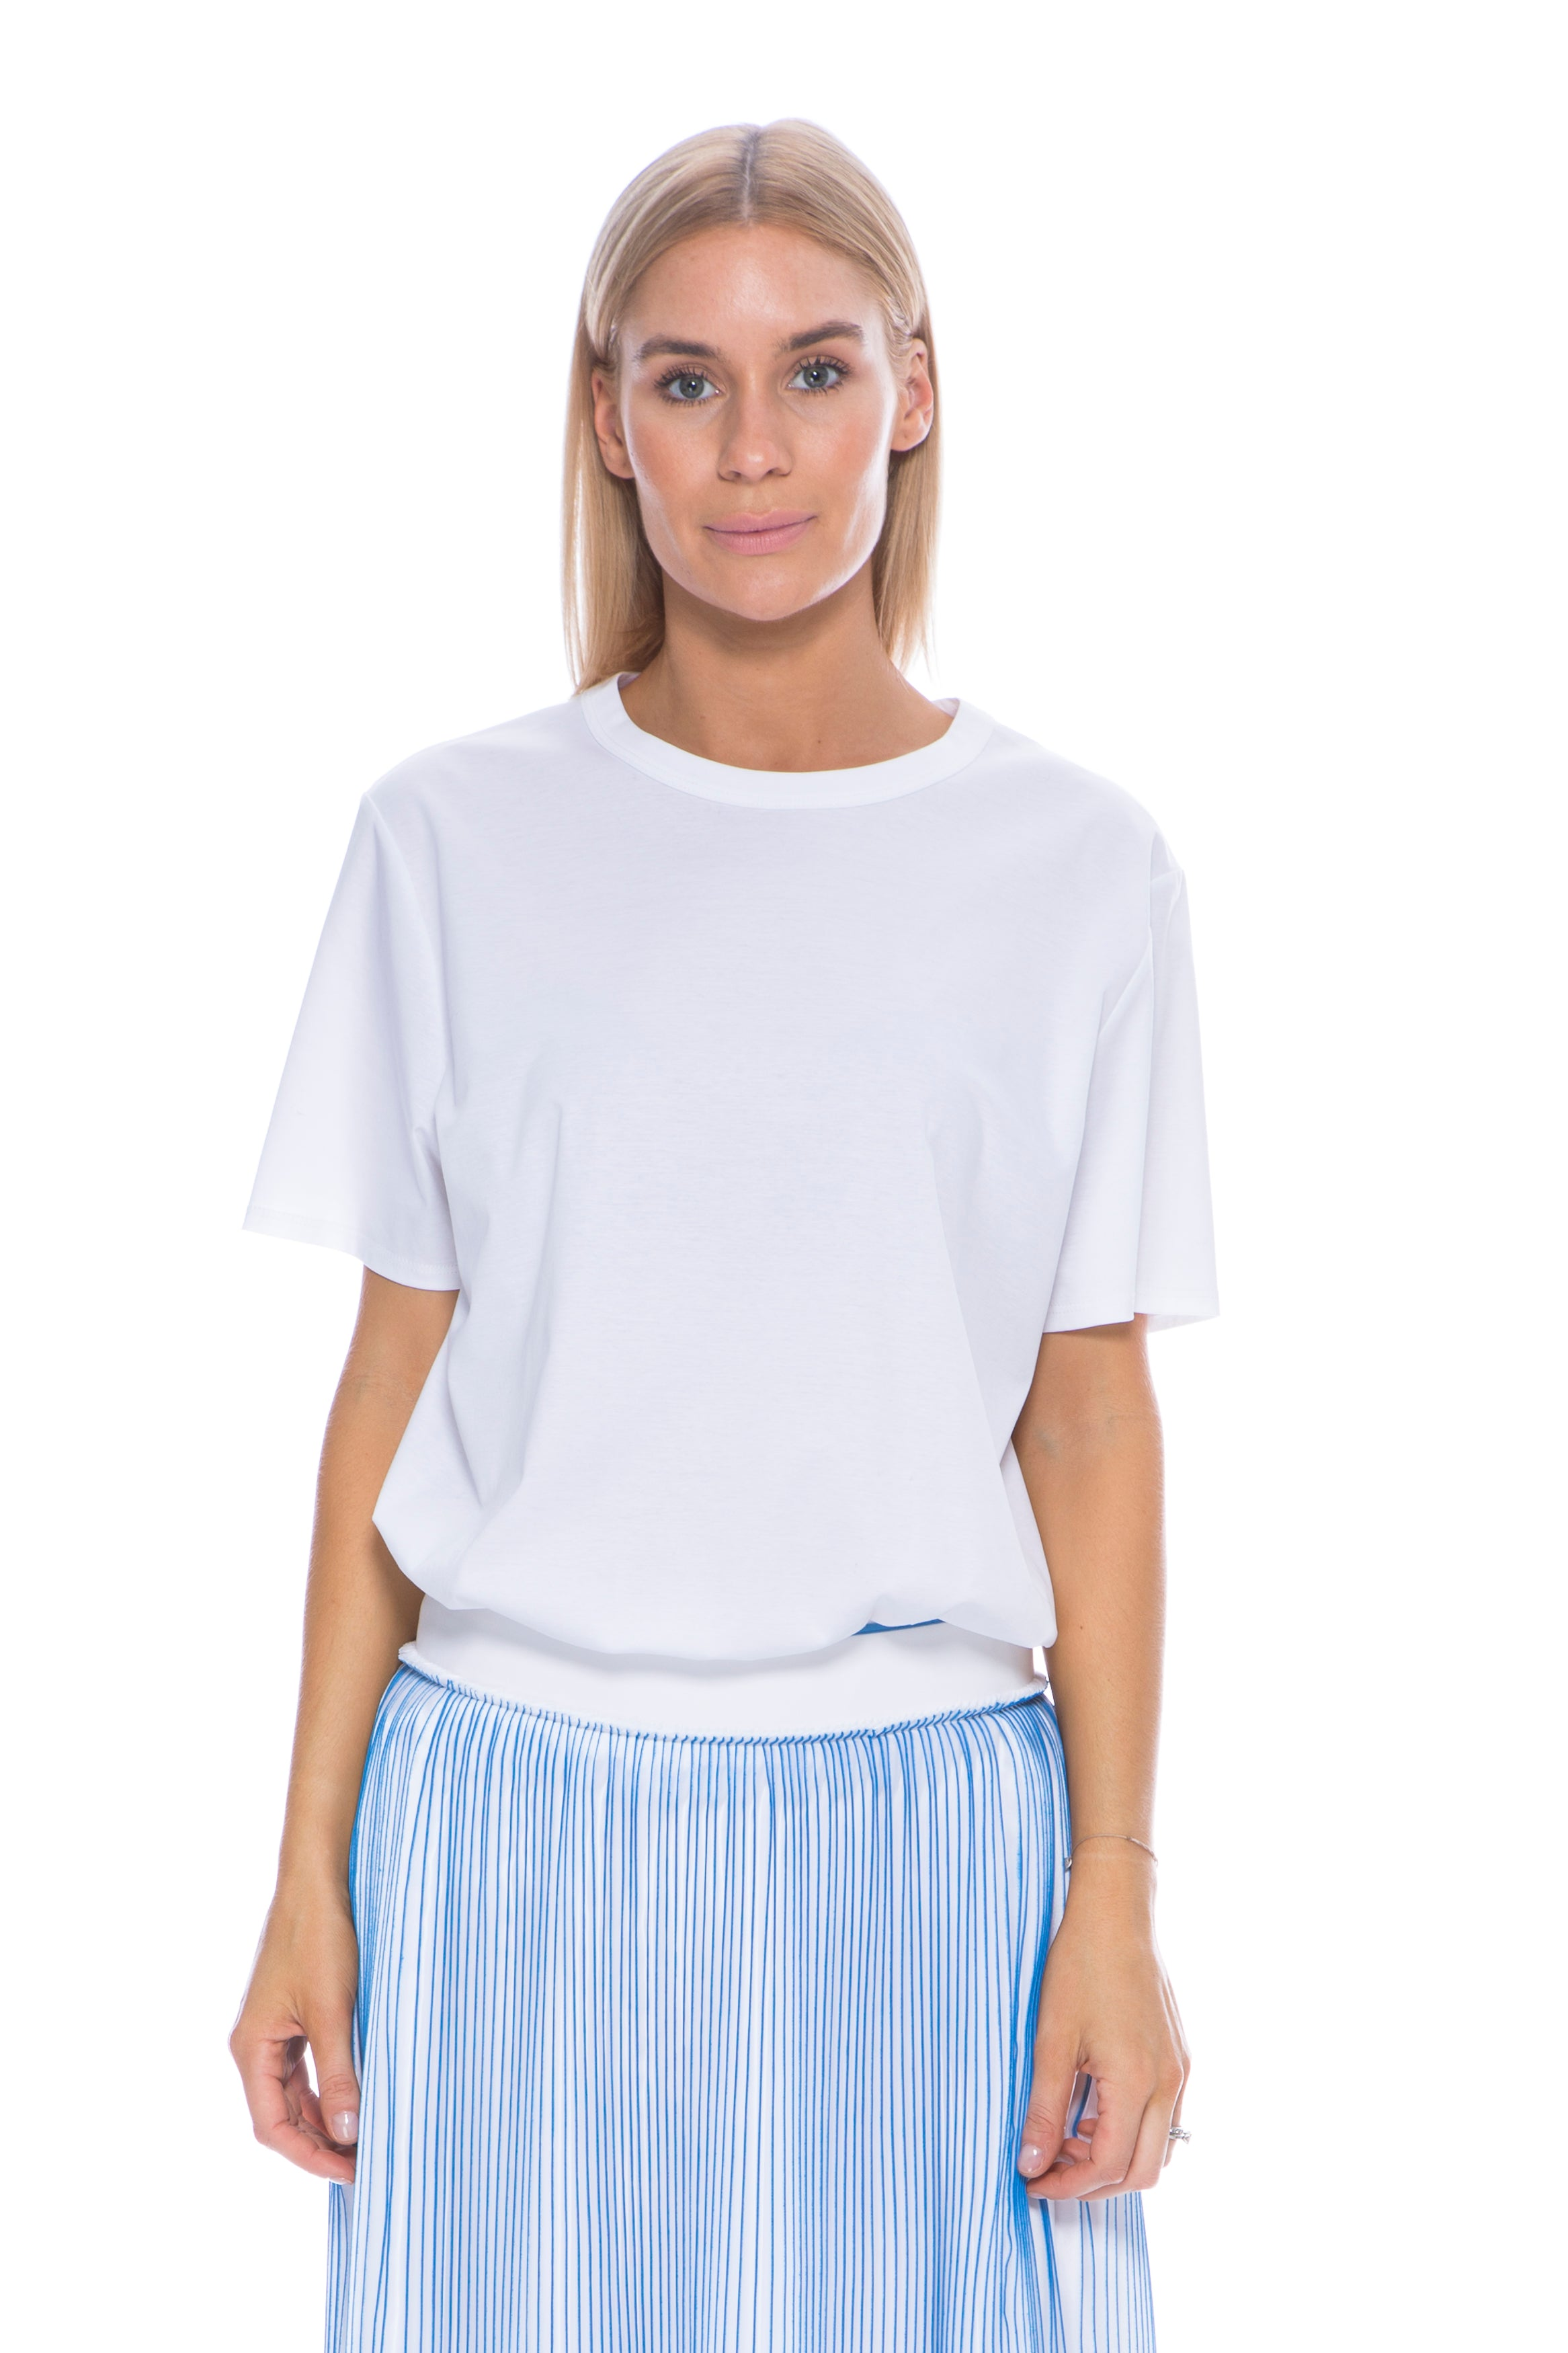 PLEATED SKIRT WHITE / BLUE